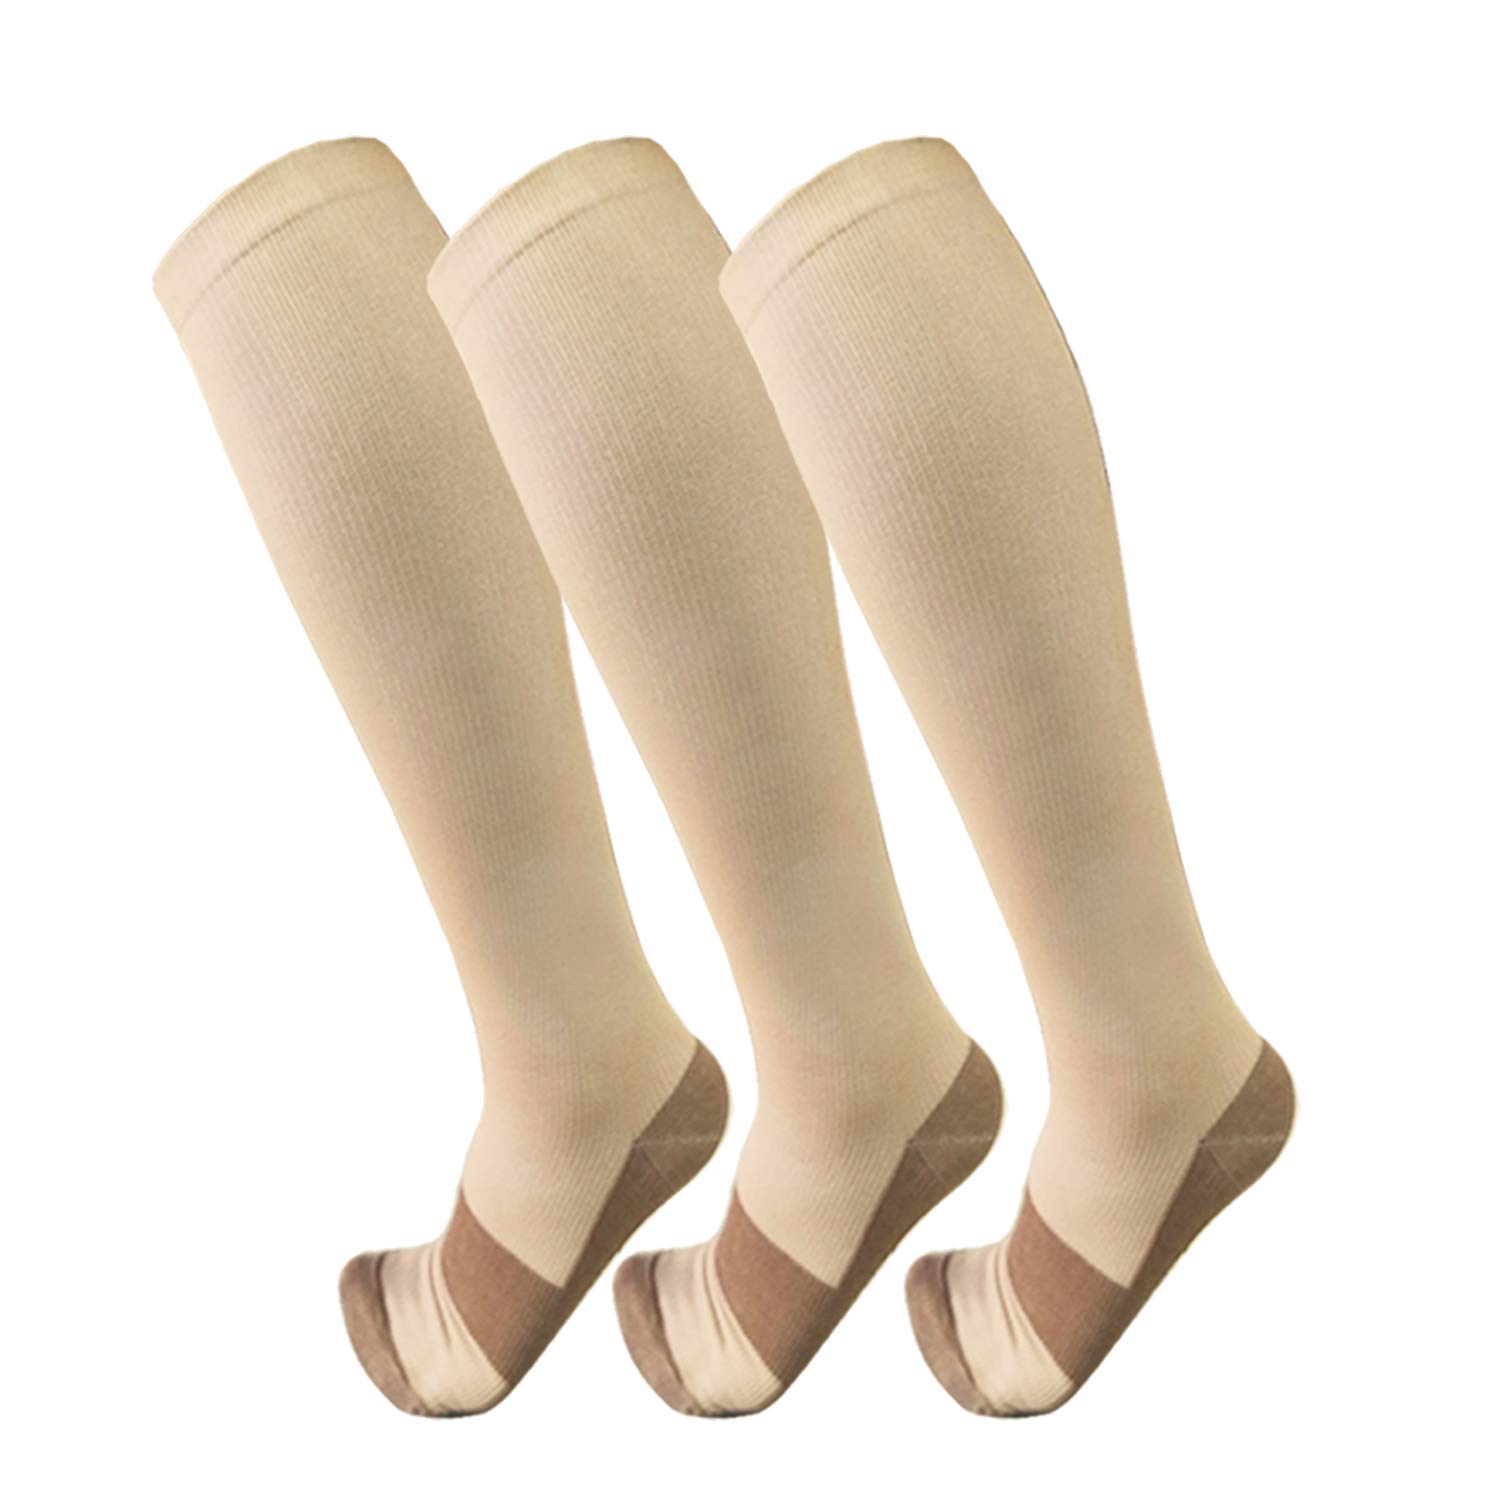 Copper Compression Socks For Men & Women(3 Pairs)- Best For Running,Athletic,Medical,Pregnancy and Travel -15-20mmHg (L/XL, Nude) by FuelMeFoot